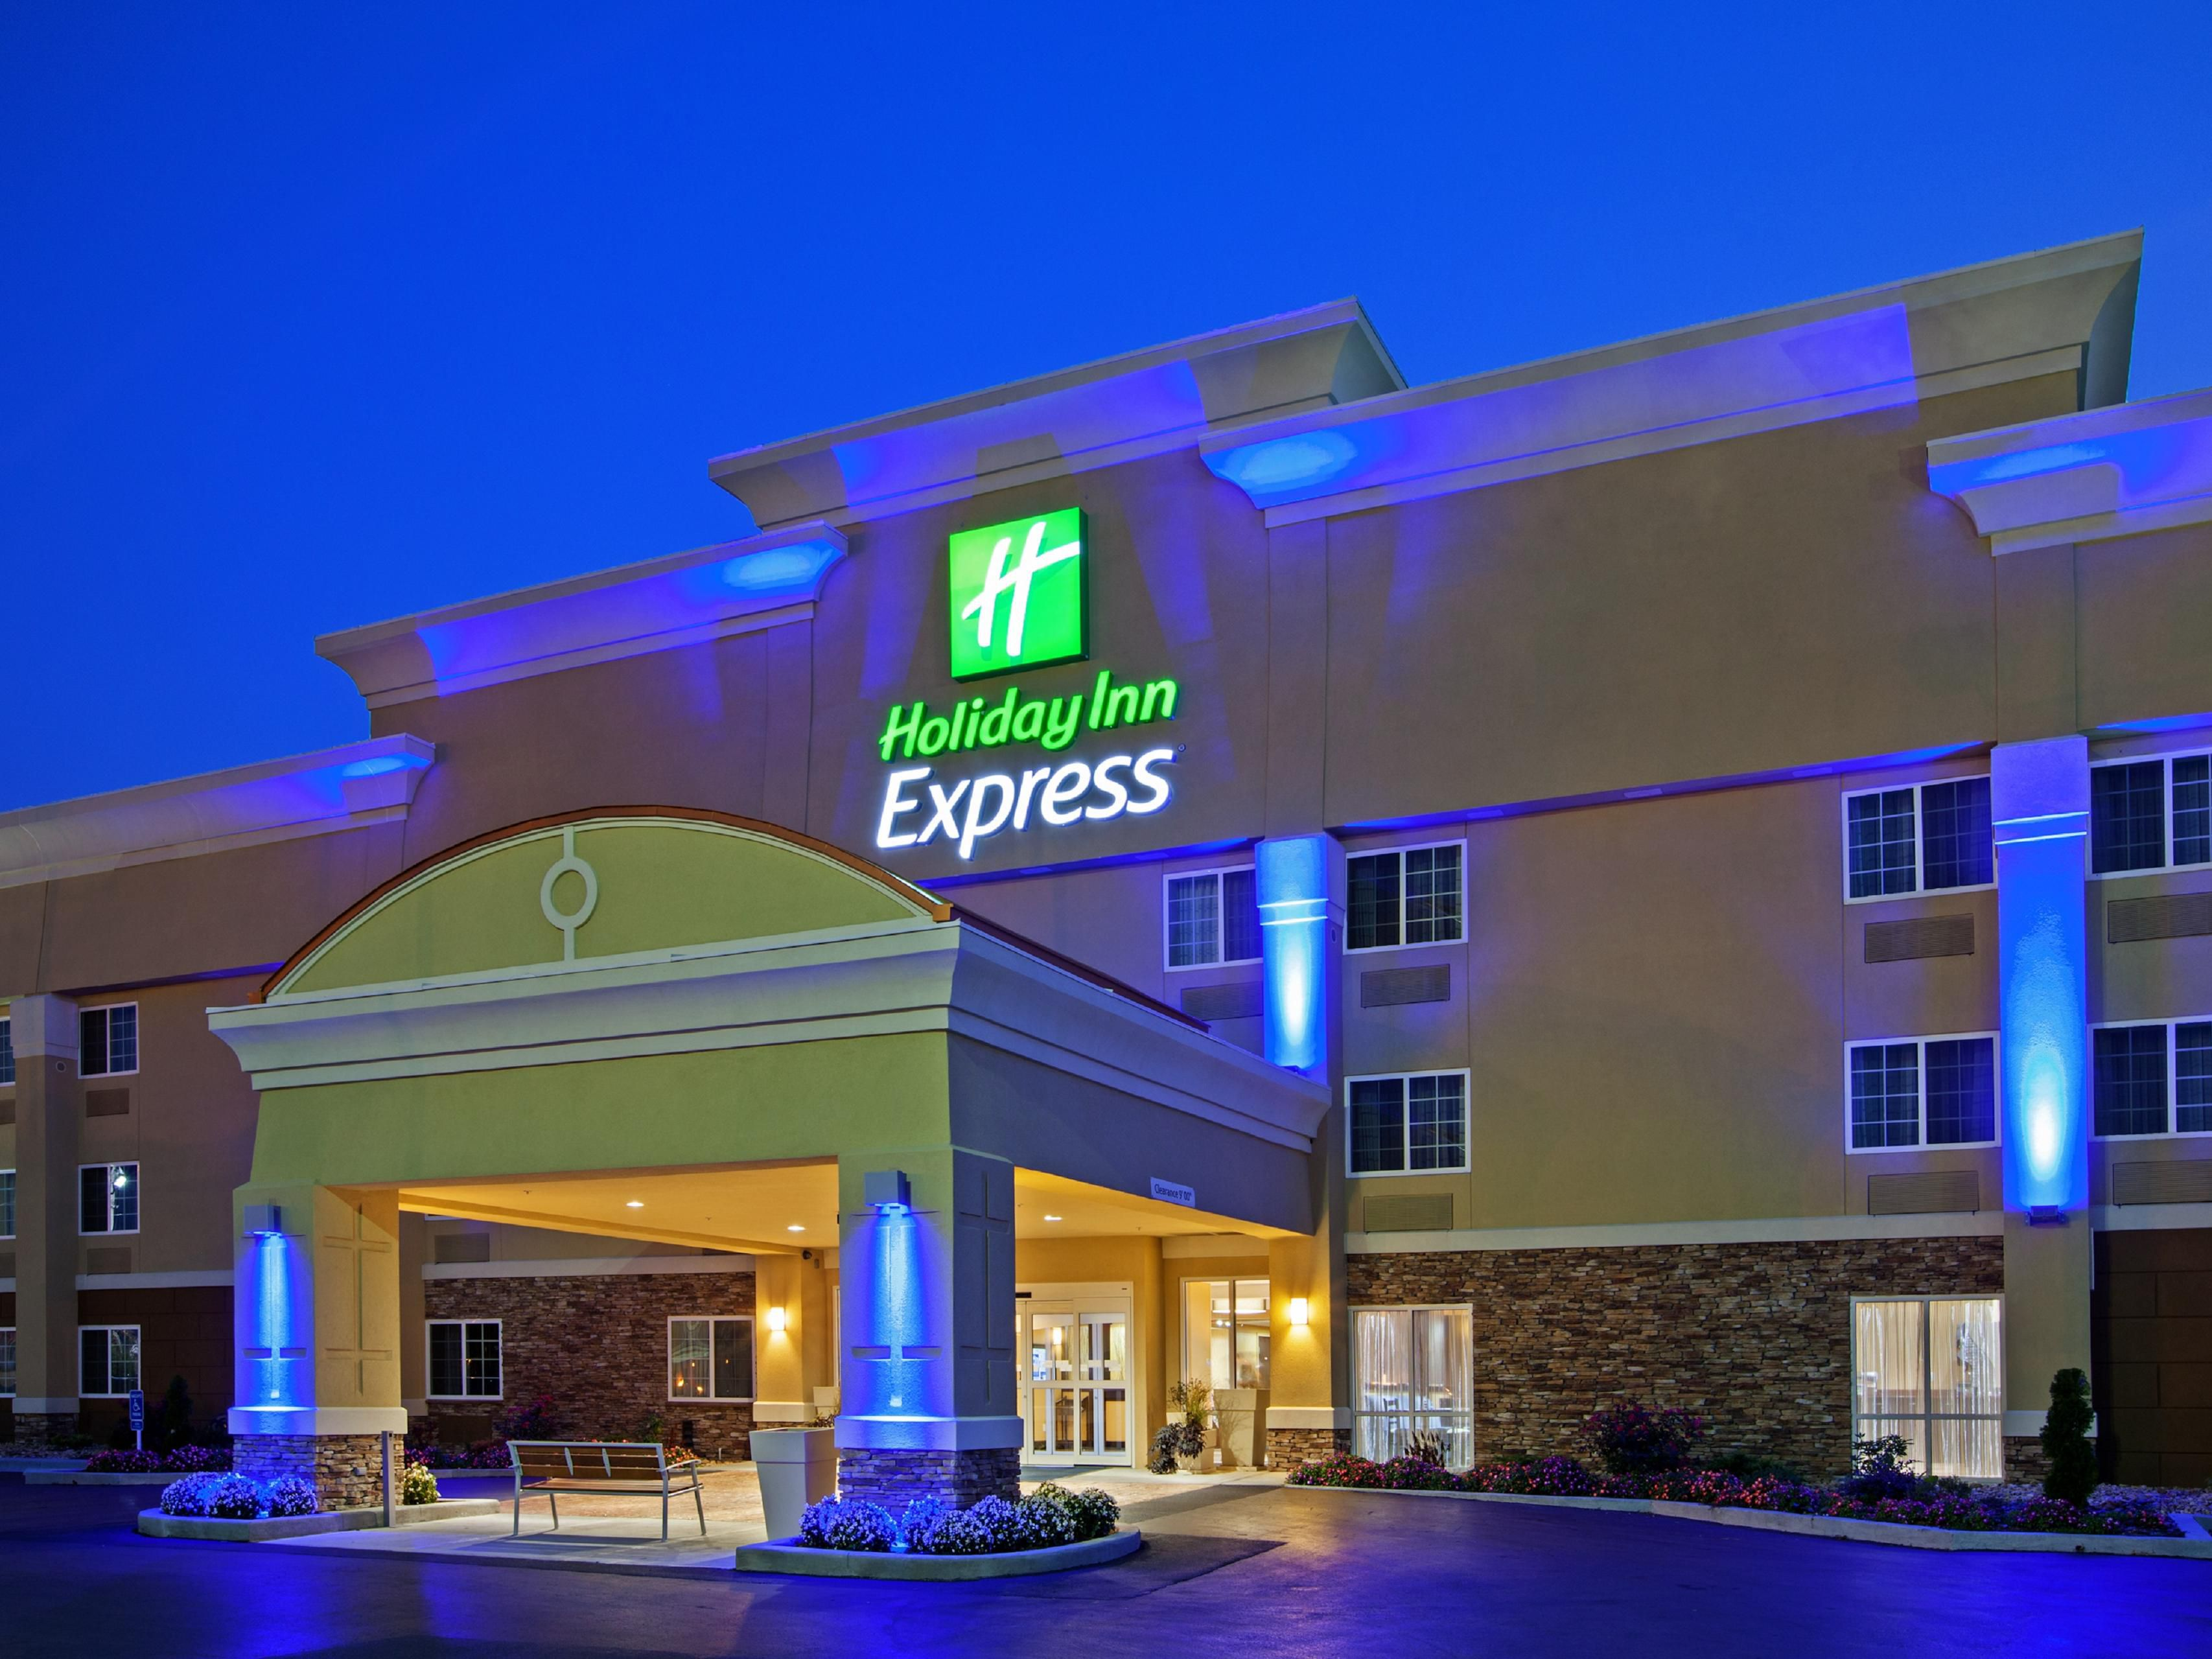 Welcome to the Holiday Inn Express of Bowling Green